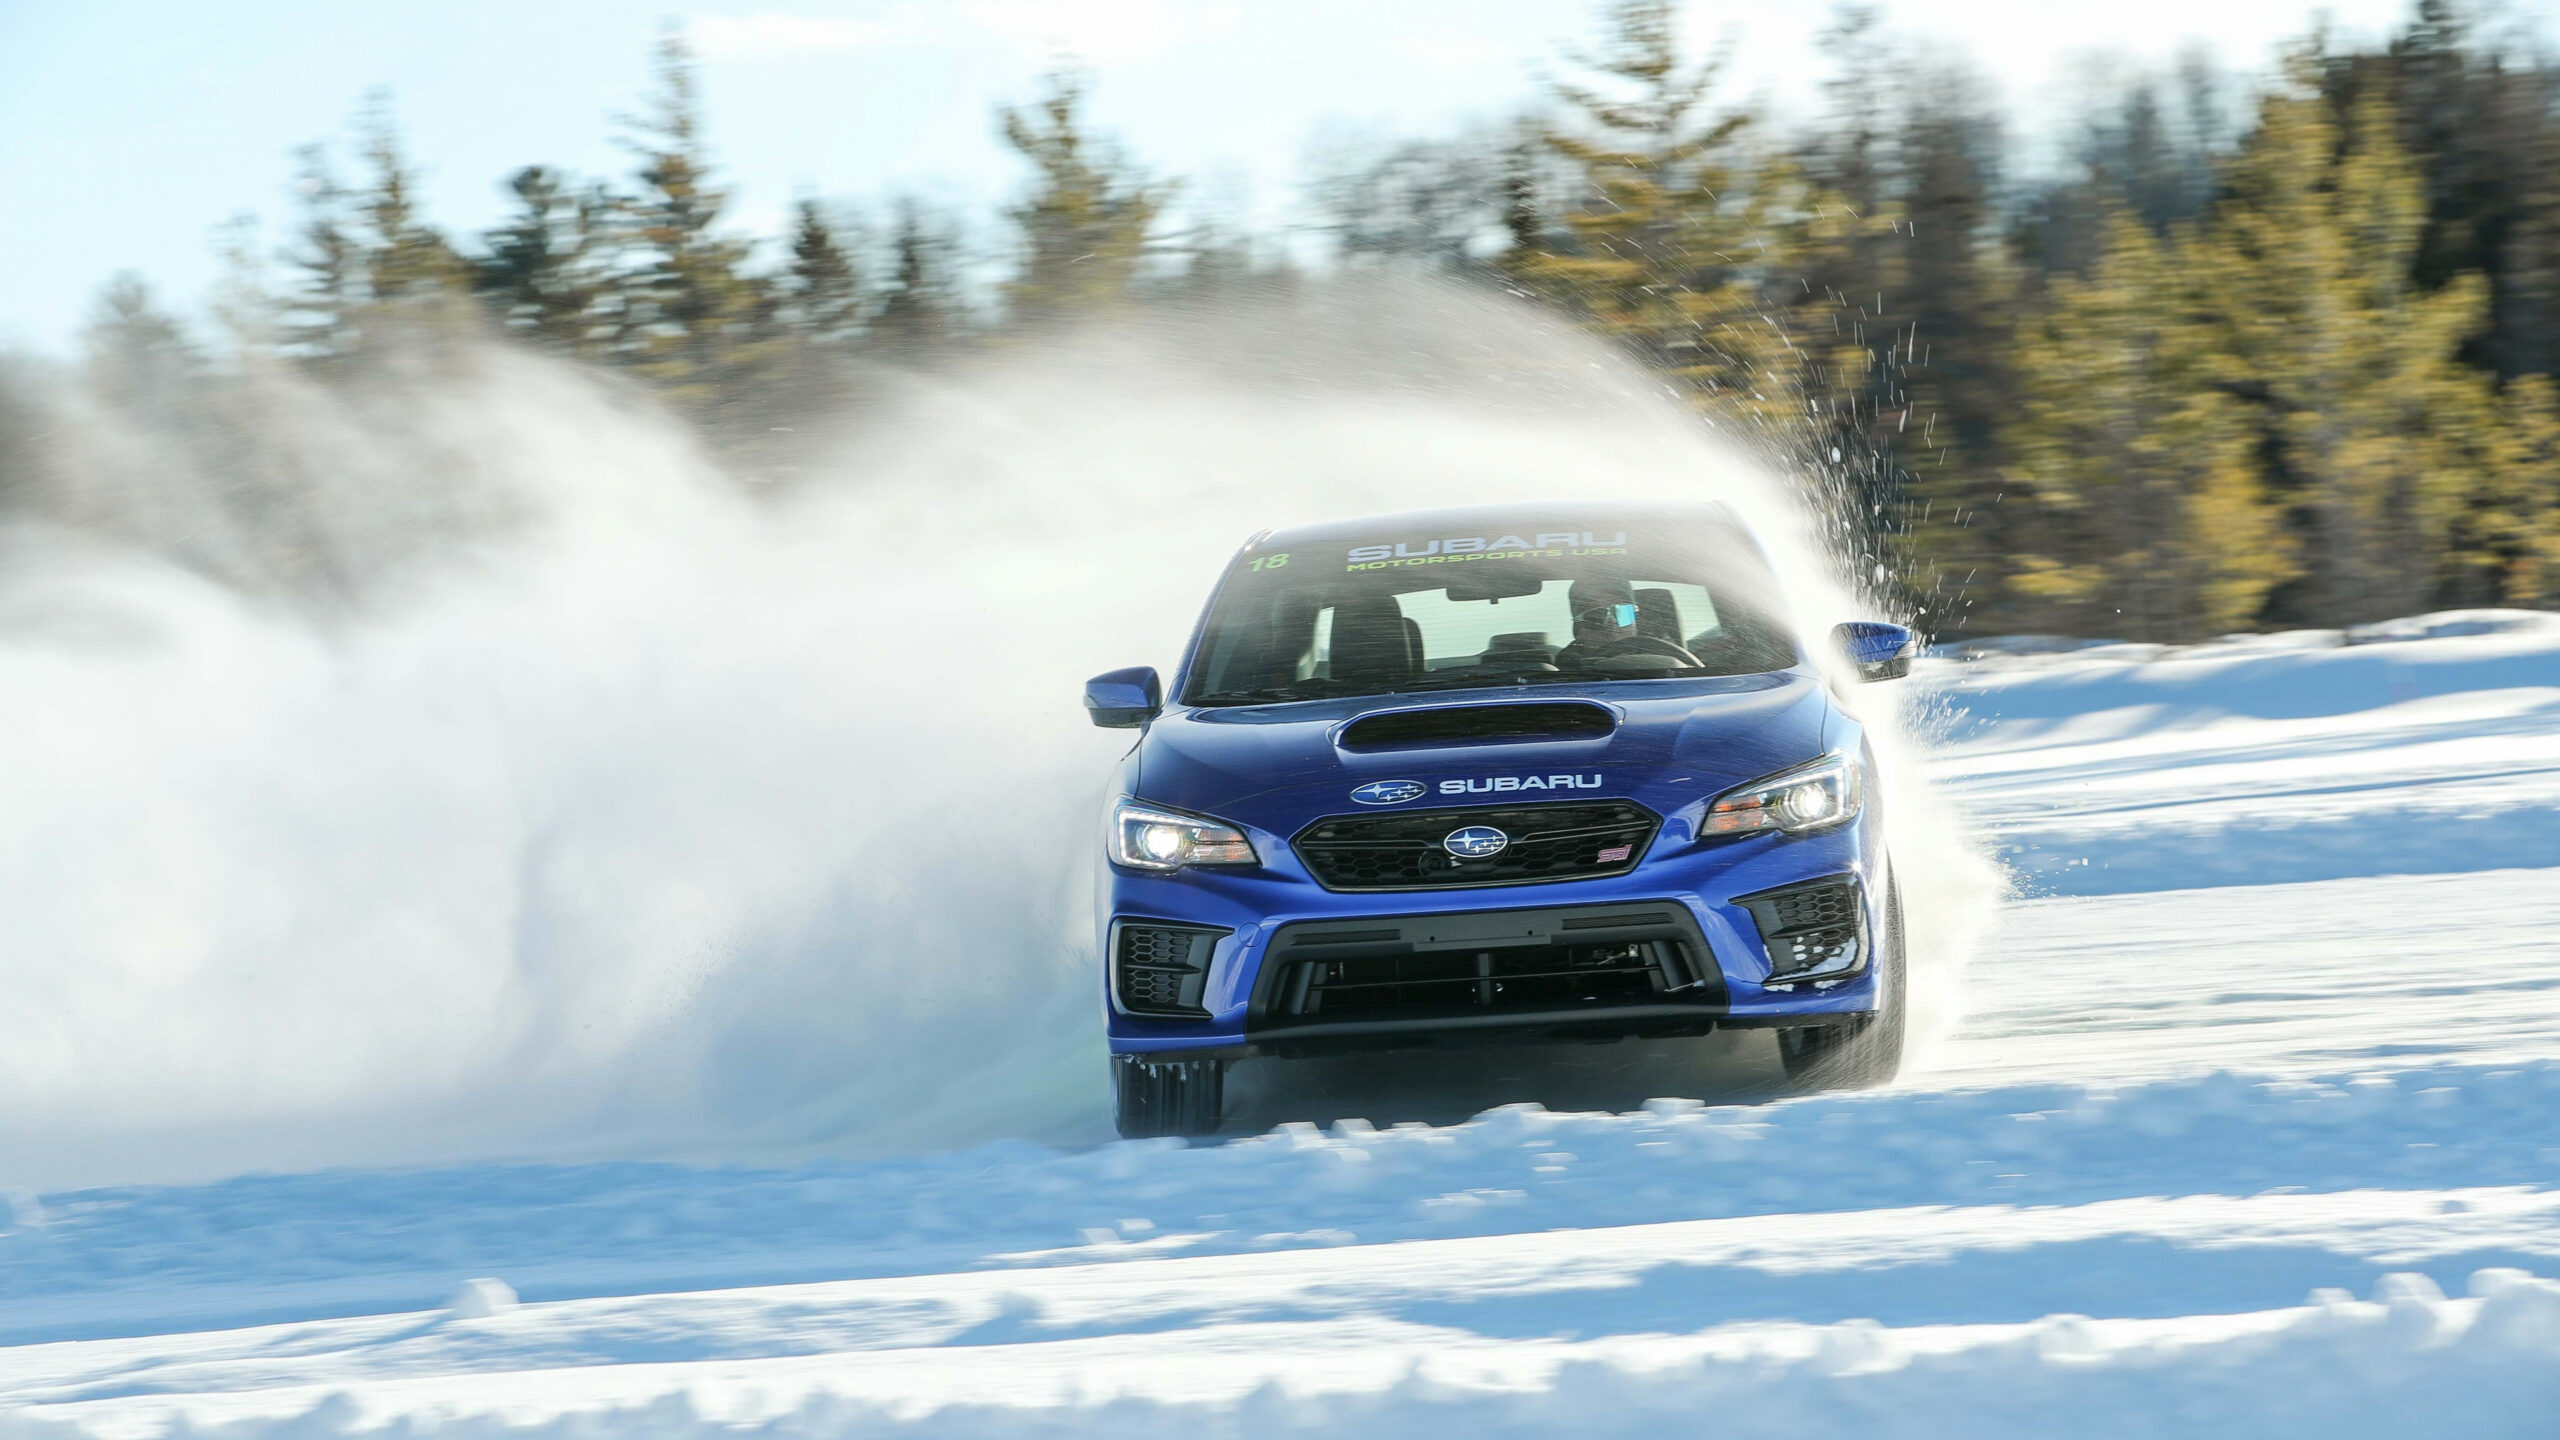 Review: 11 Subaru WRX STI road test